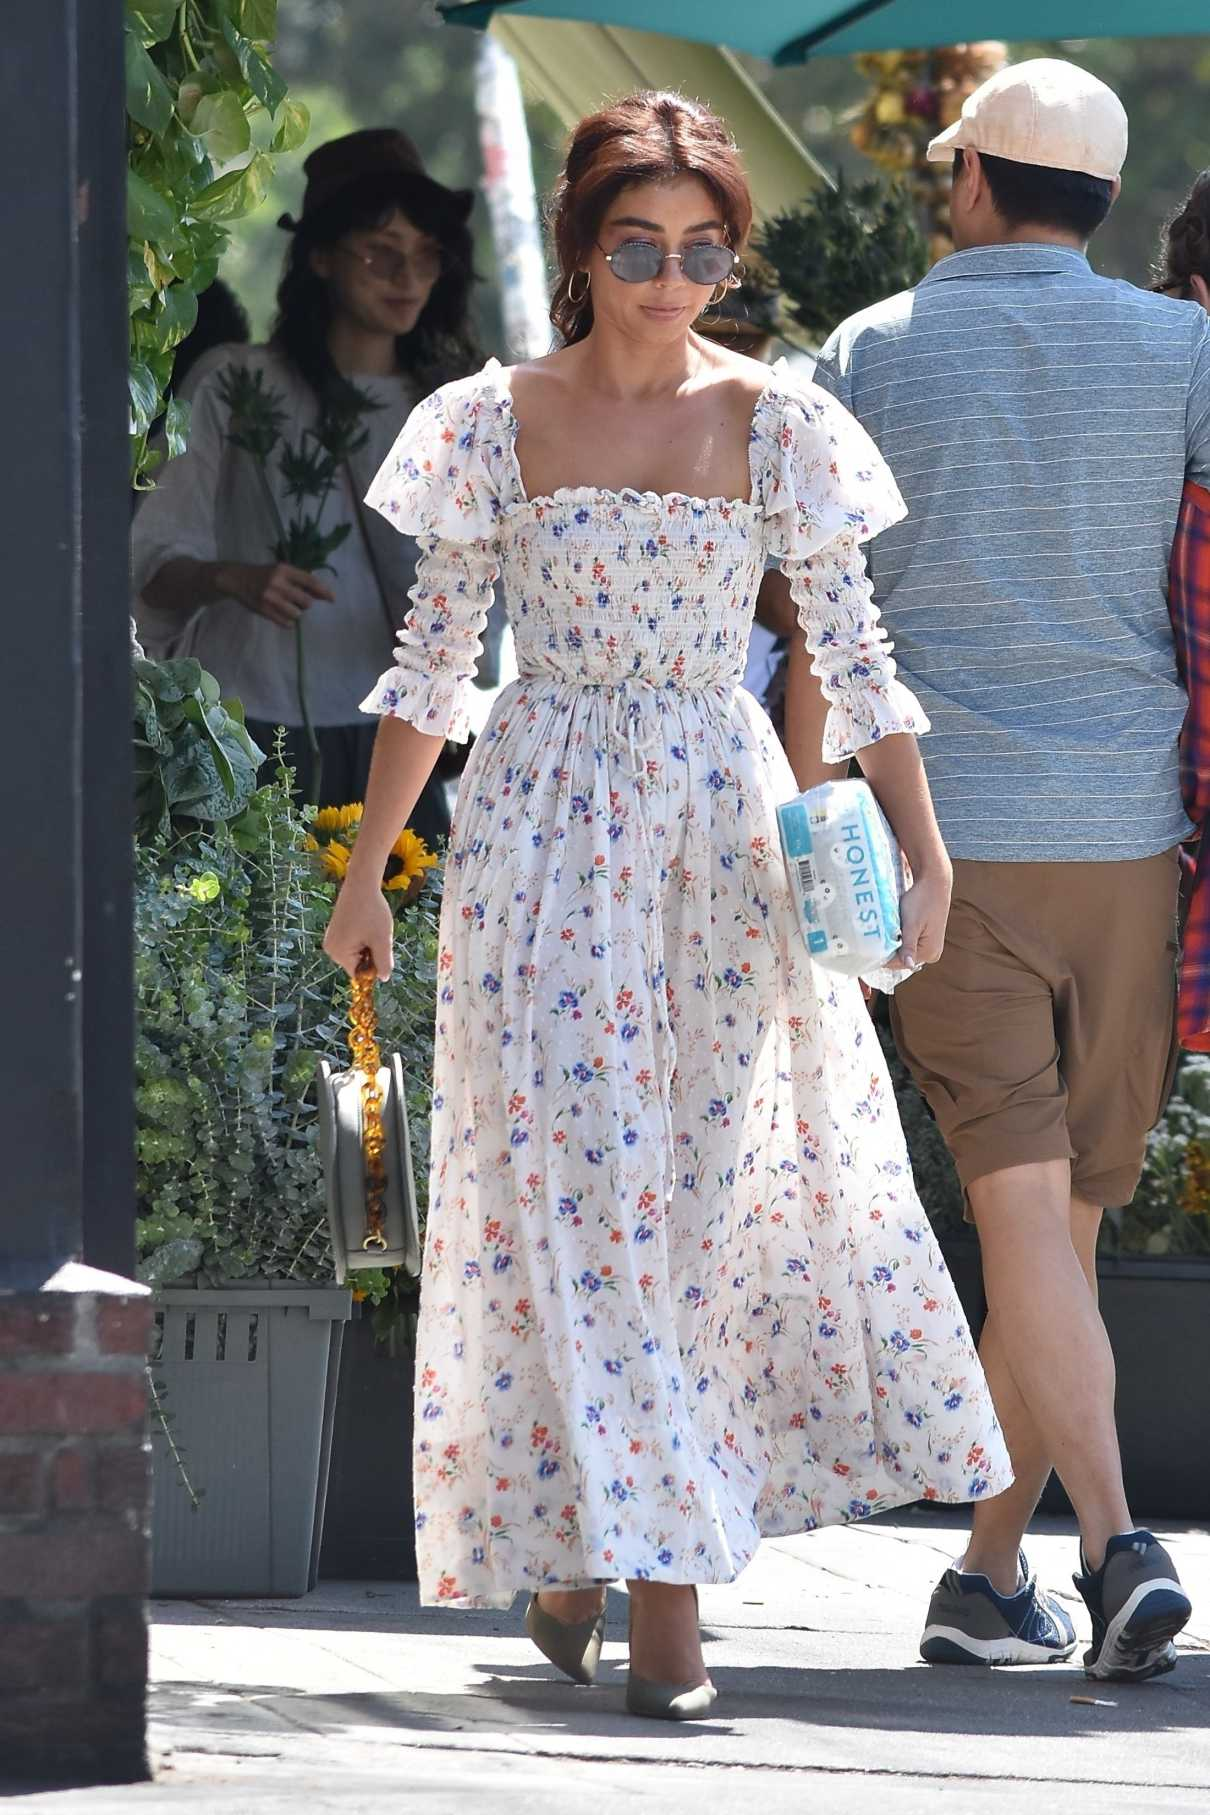 Sarah Hyland in a White Floral Dress